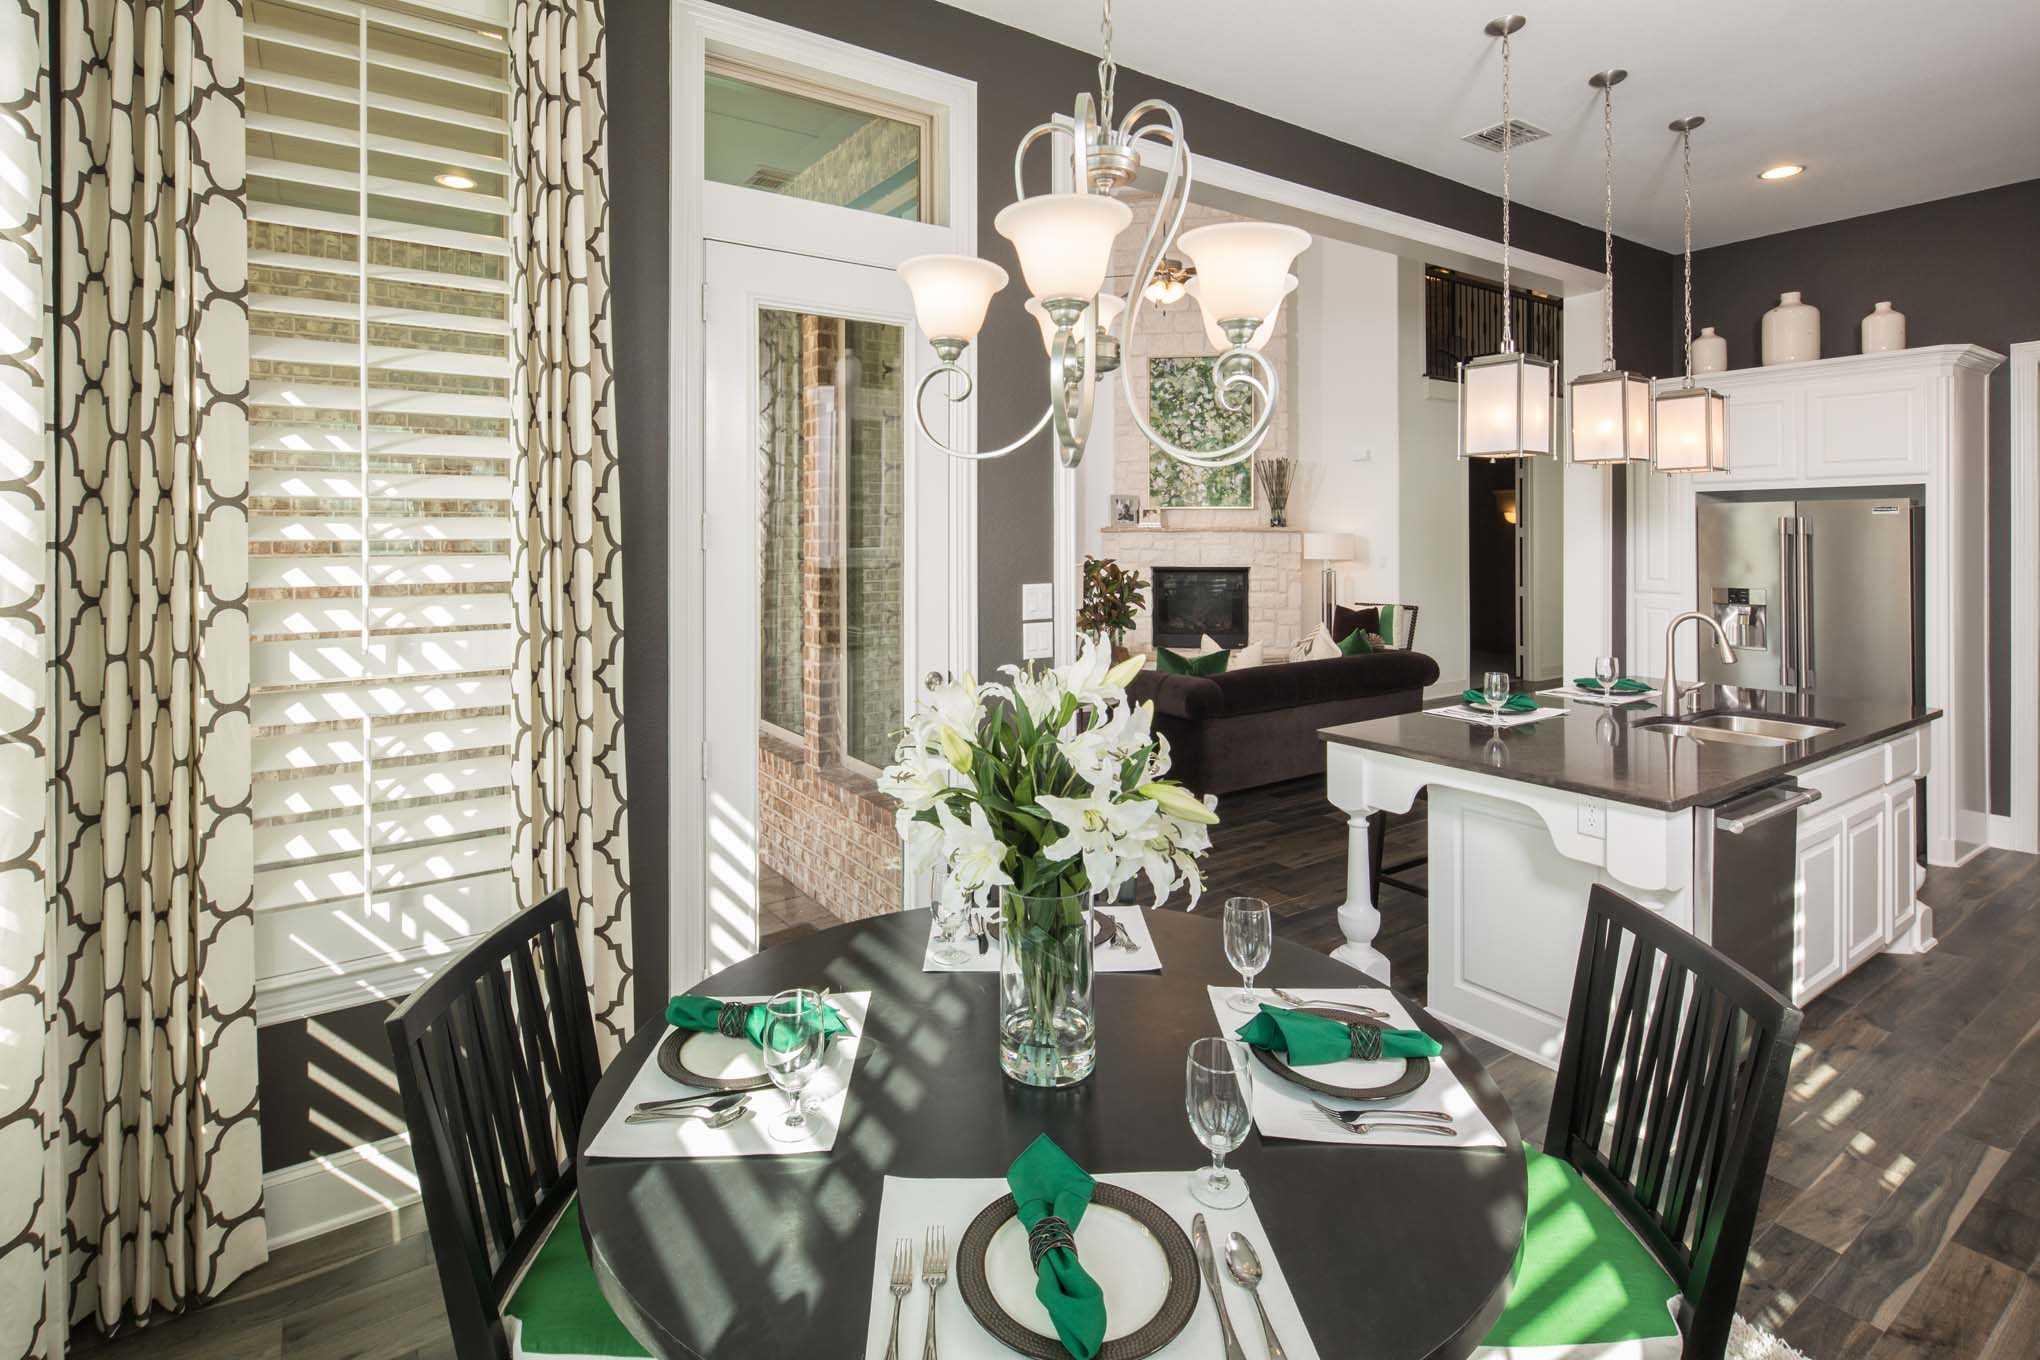 New Homes In Hollyhock: 65ft. Lots